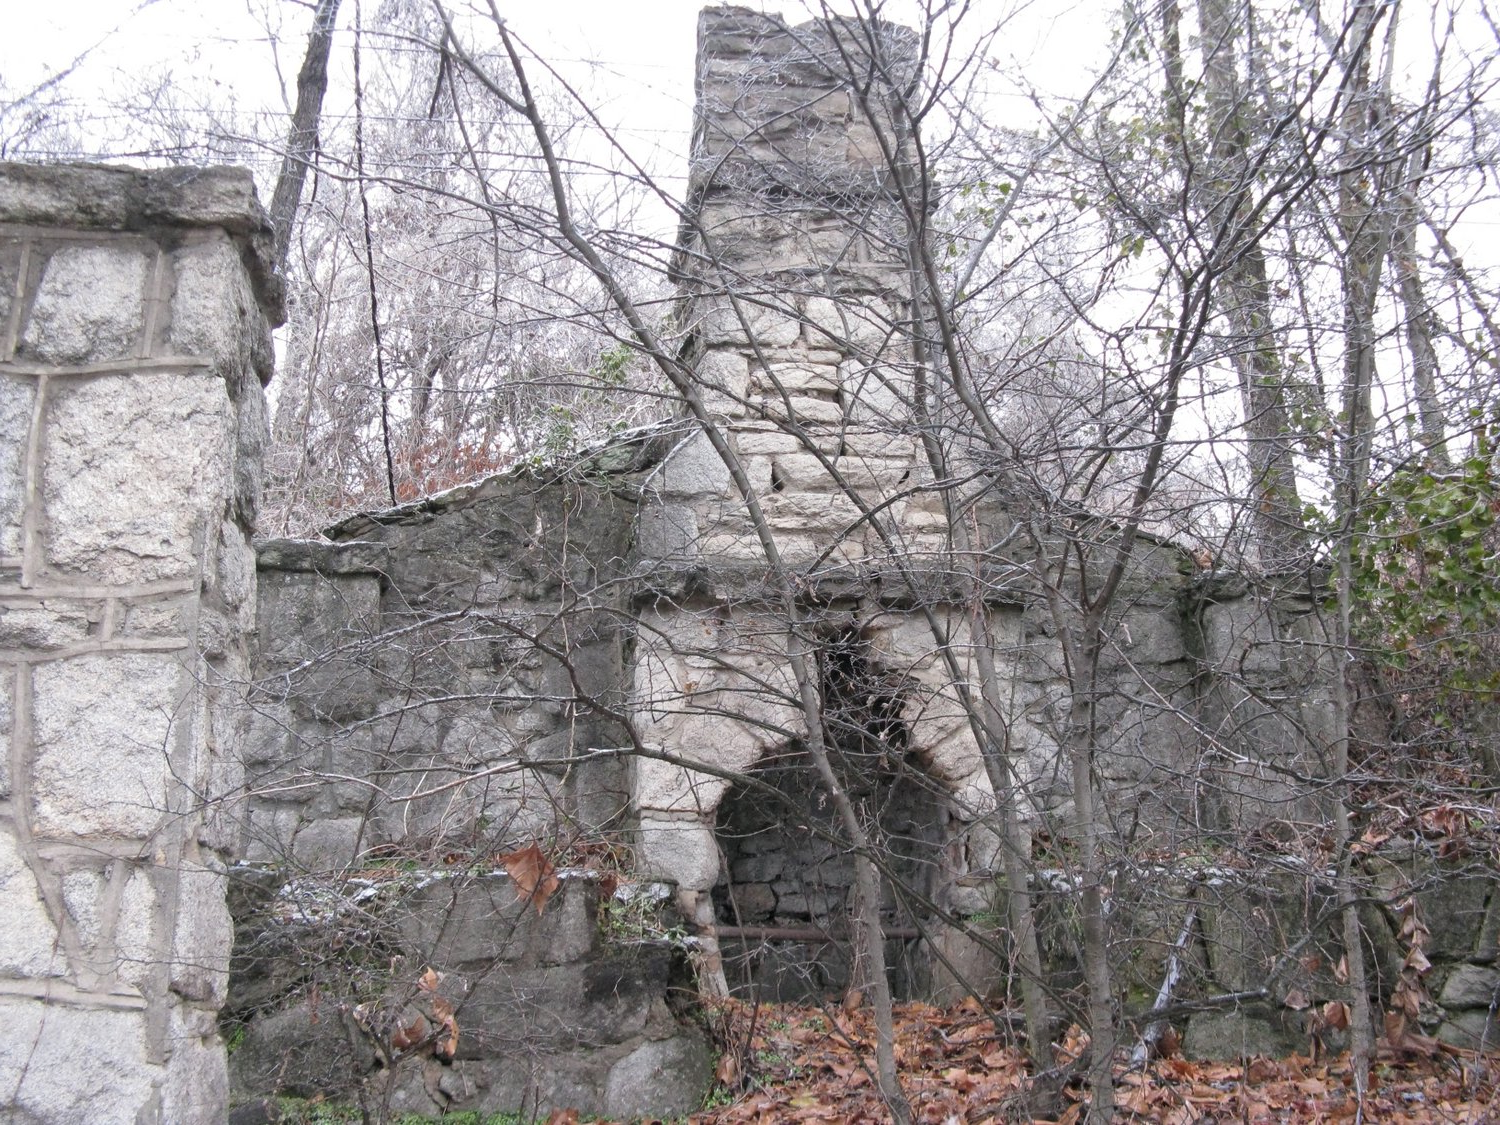 Old stone fireplace along Hwy. 64 in Knightdale